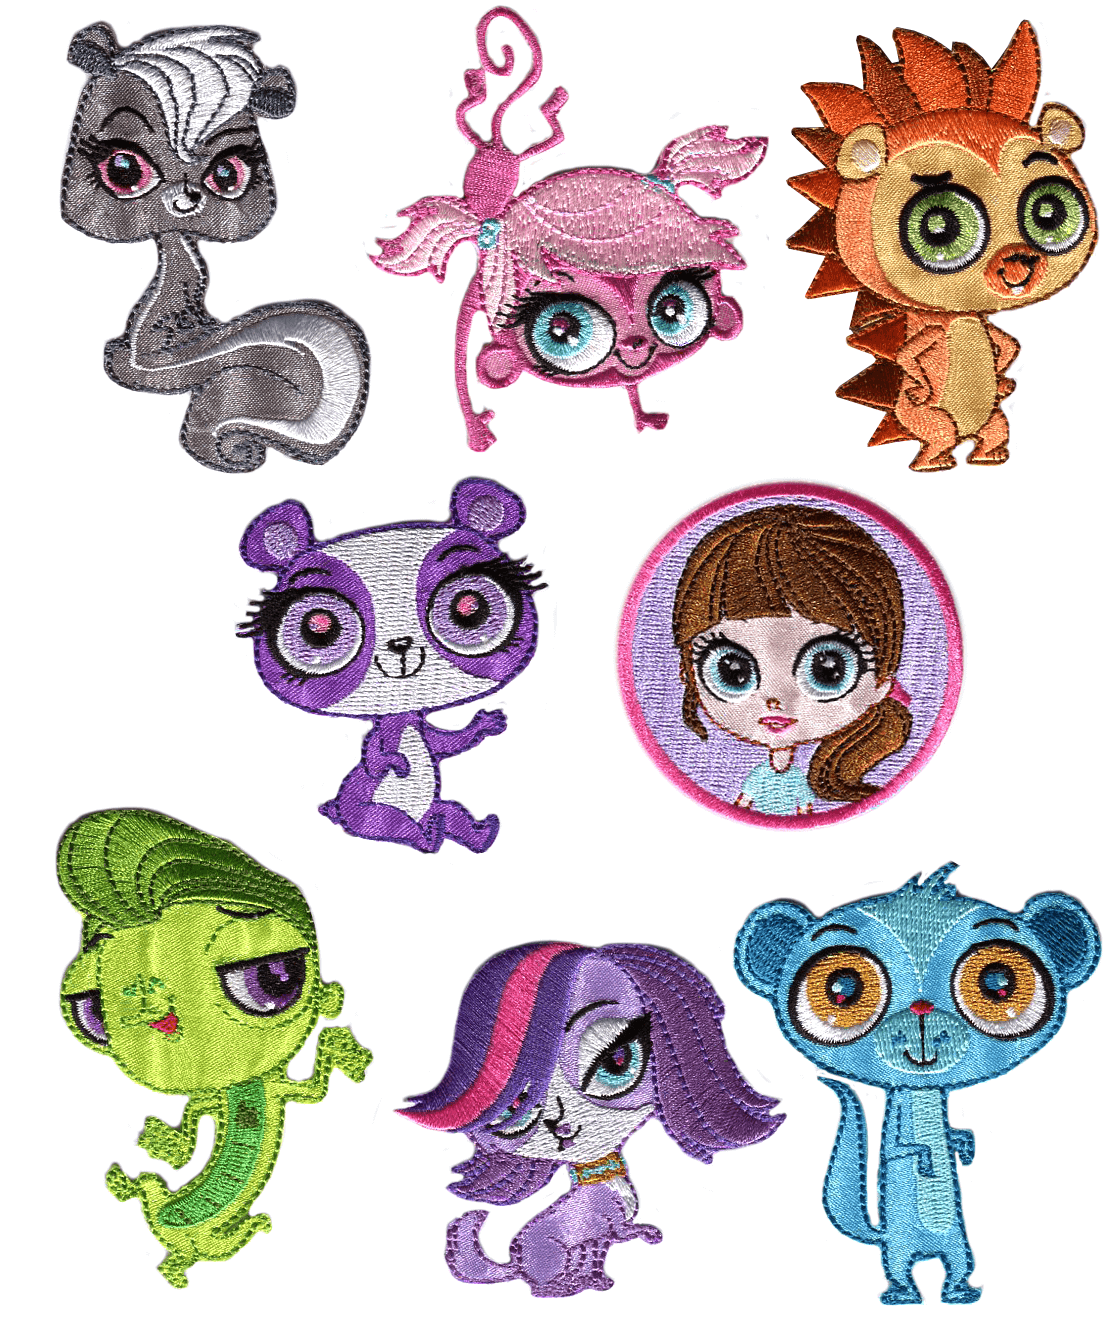 Littlest Pet Shop Patches Woven Iron / Sew On Motif Applique